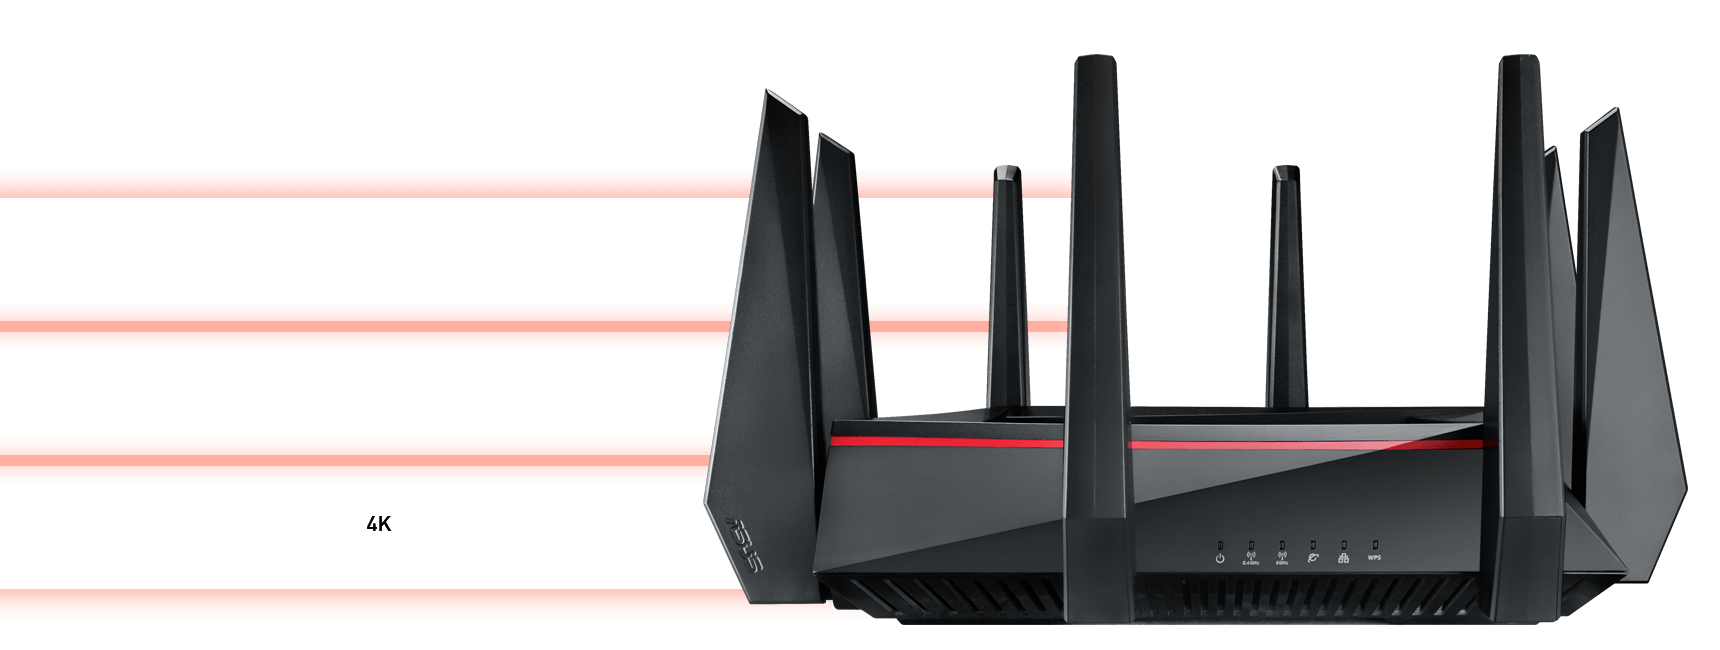 hight resolution of this means you get better range and faster more reliable connections consistently without the need to manually re connect to the best band available